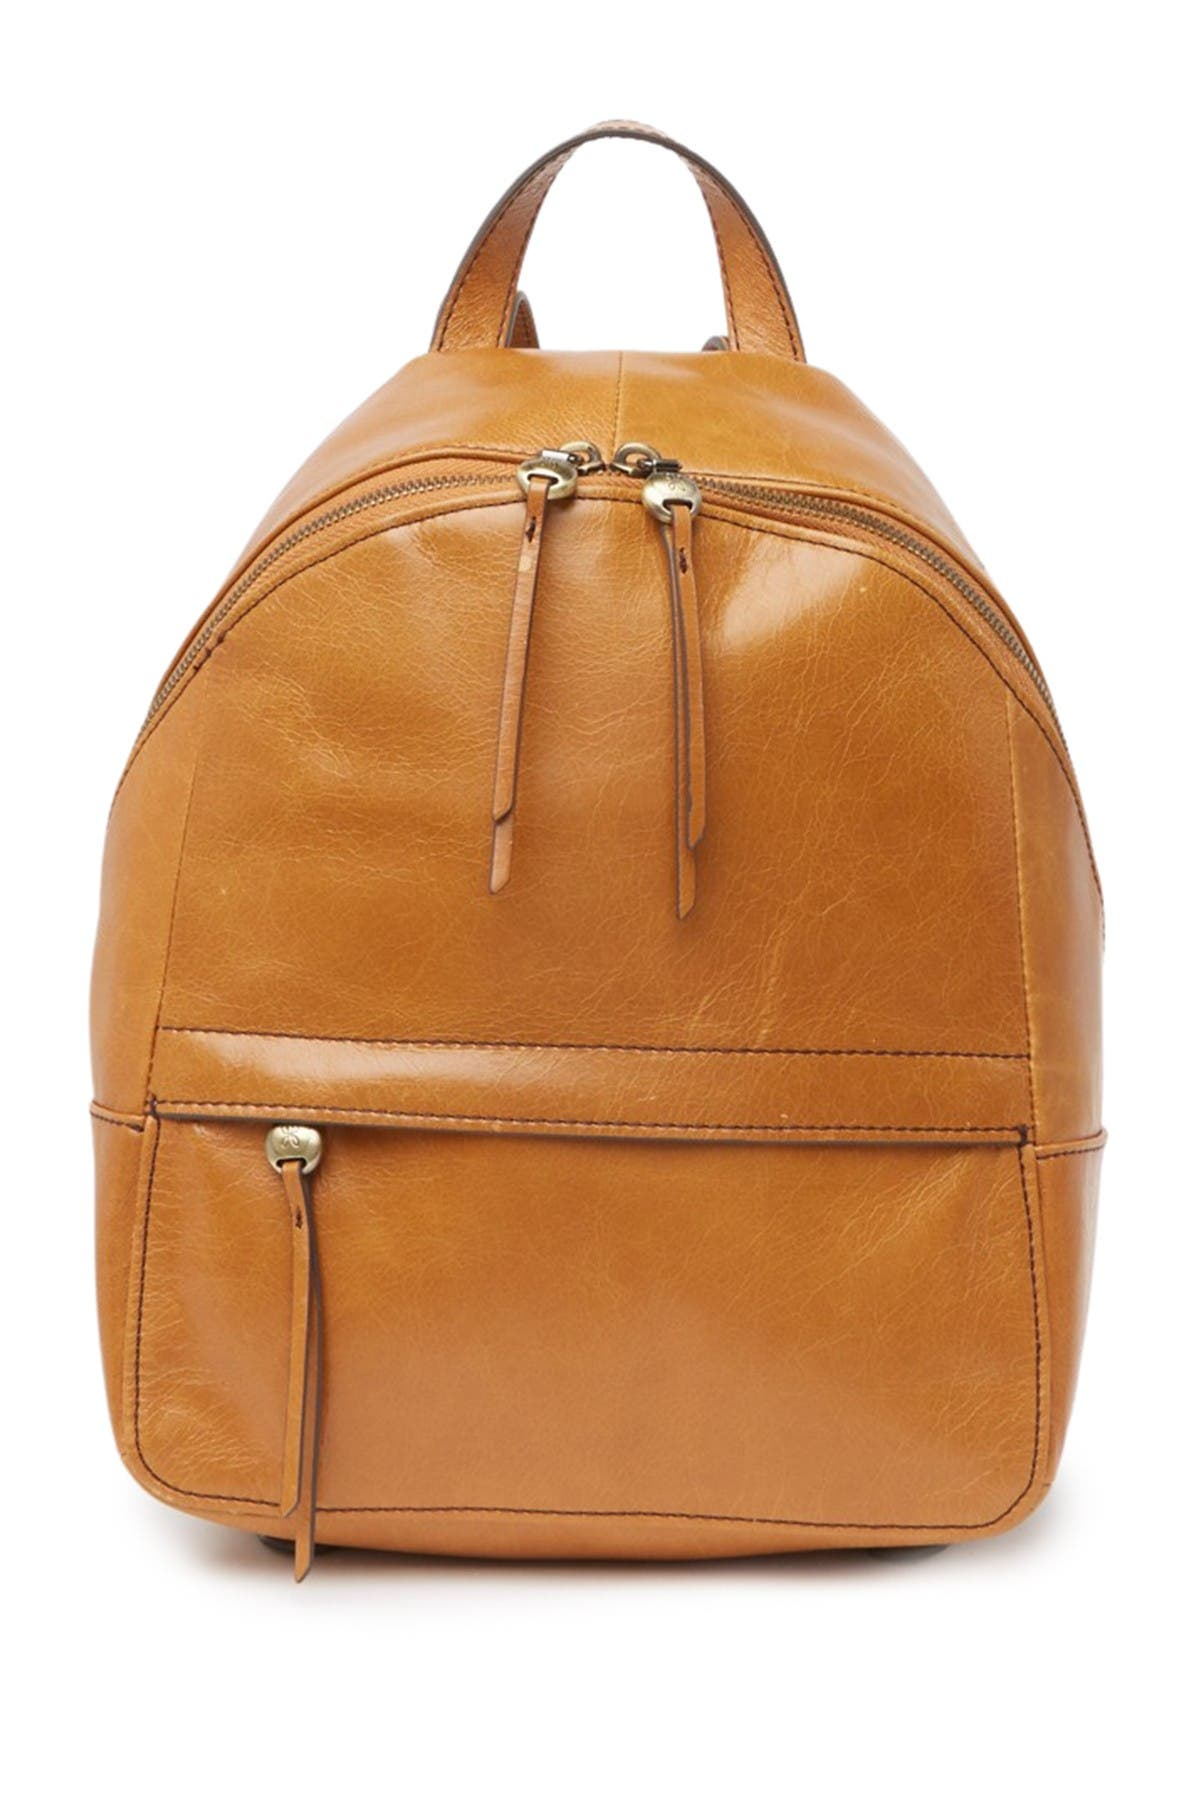 Image of Hobo Cliff Leather Backpack